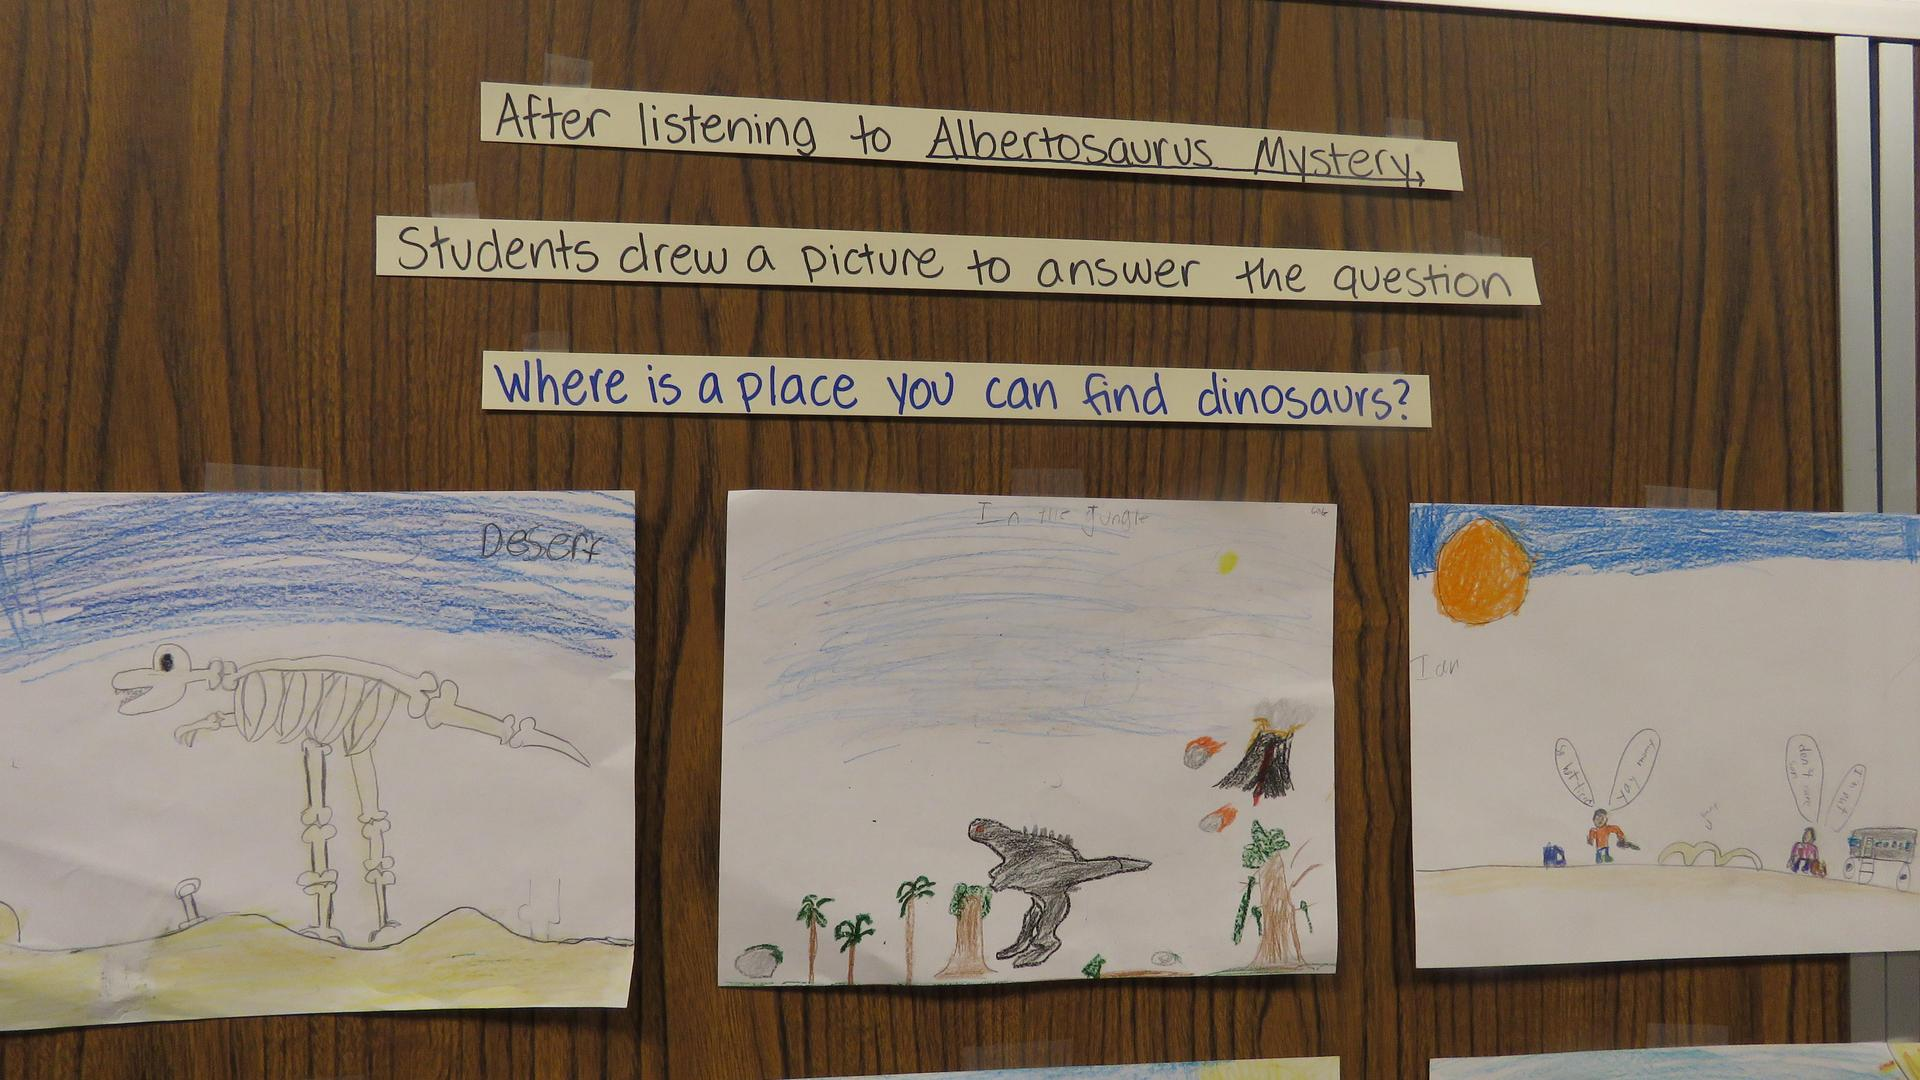 Children draw pictures of dinosaurs in response to the prompt 'Where is a place you can find dinosaurs?'